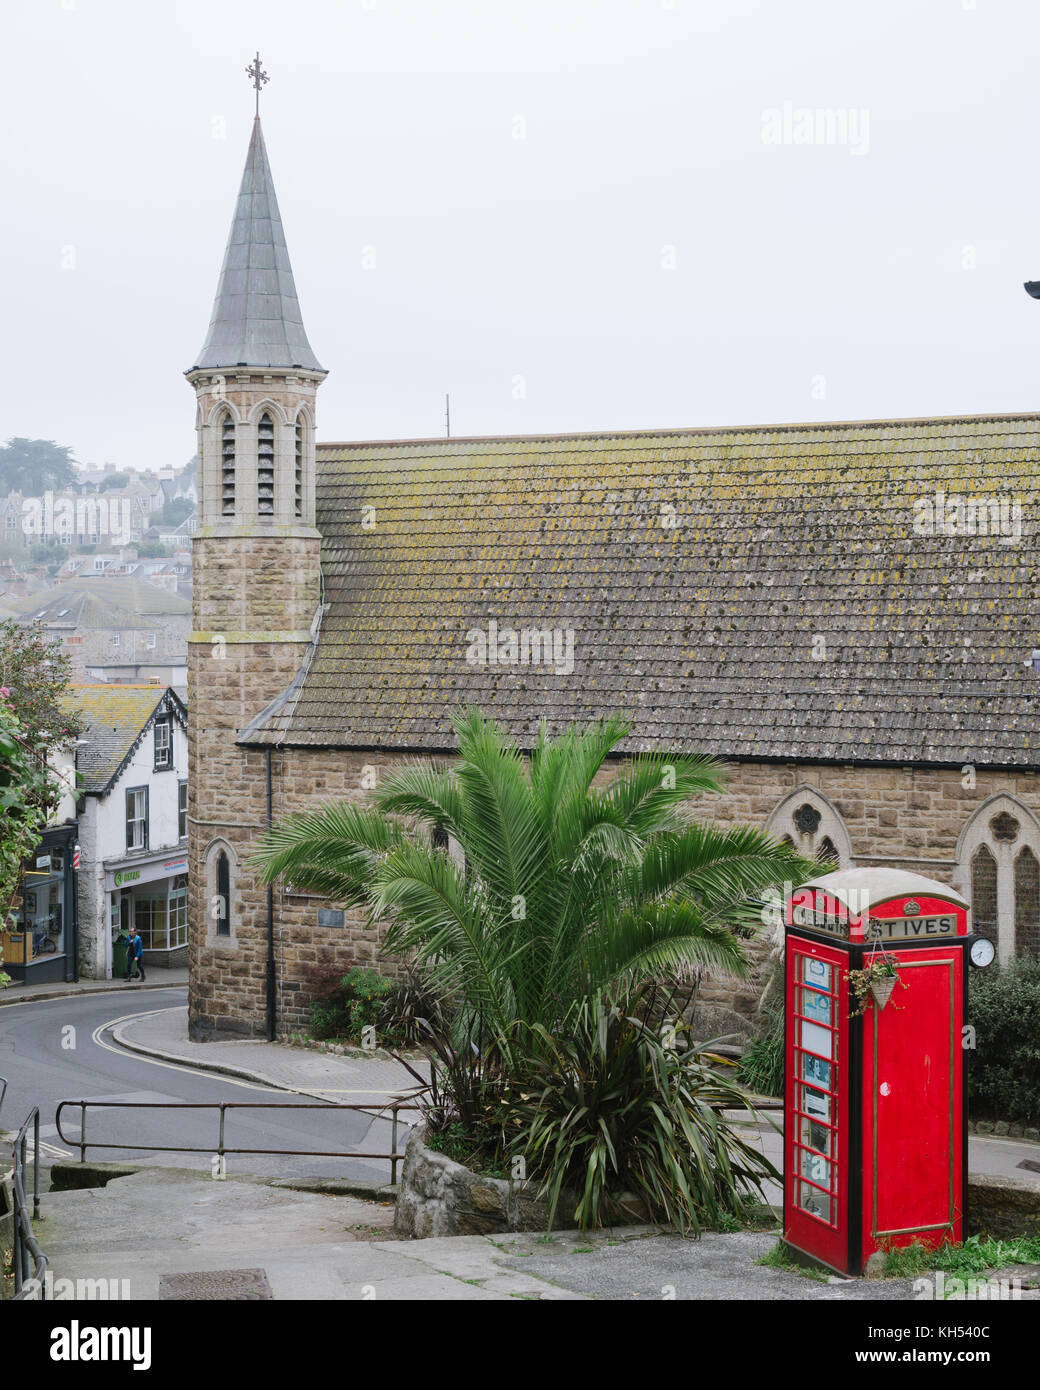 Phone box in St Ives with church in the background - Stock Image